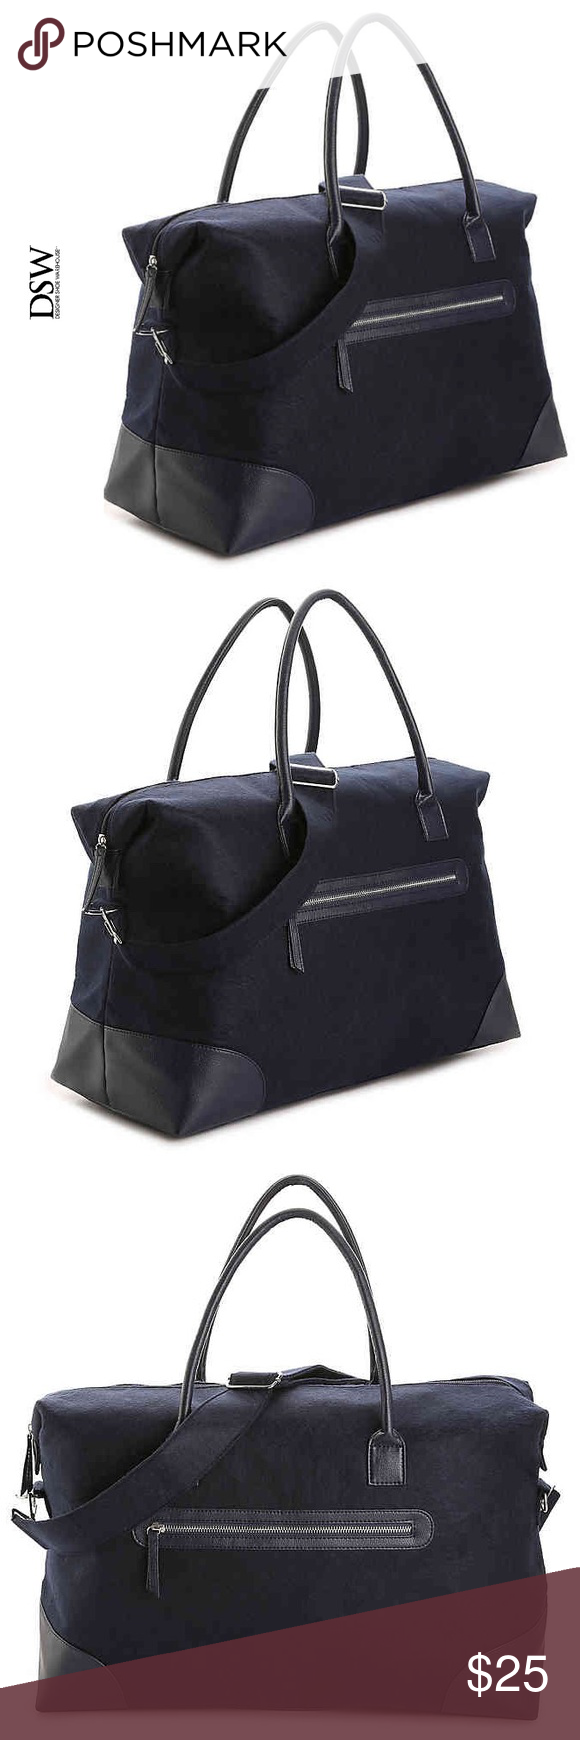 """🆕🌻DSW Navy Felt Weekender Bag 🆕🌻 Perfect for a weekend getaway, this zippered bag offers a detachable crossbody strap for carrying versatility and plenty of space for your travel essentials. FEATURES: •Navy blue felt material •Extremely roomy weekender •23.5"""" L x 15"""" H x 8.75"""" D •Perfect size for a weekend get-away! •Easy to grip rounded handle •Detachable and Adjustable shoulder strap •Easy to carry bag •Easy access front zippered pocket;perfect place to put those items you readily need! •$PRICE FIRM (unless bundled) DSW Bags Travel Bags"""